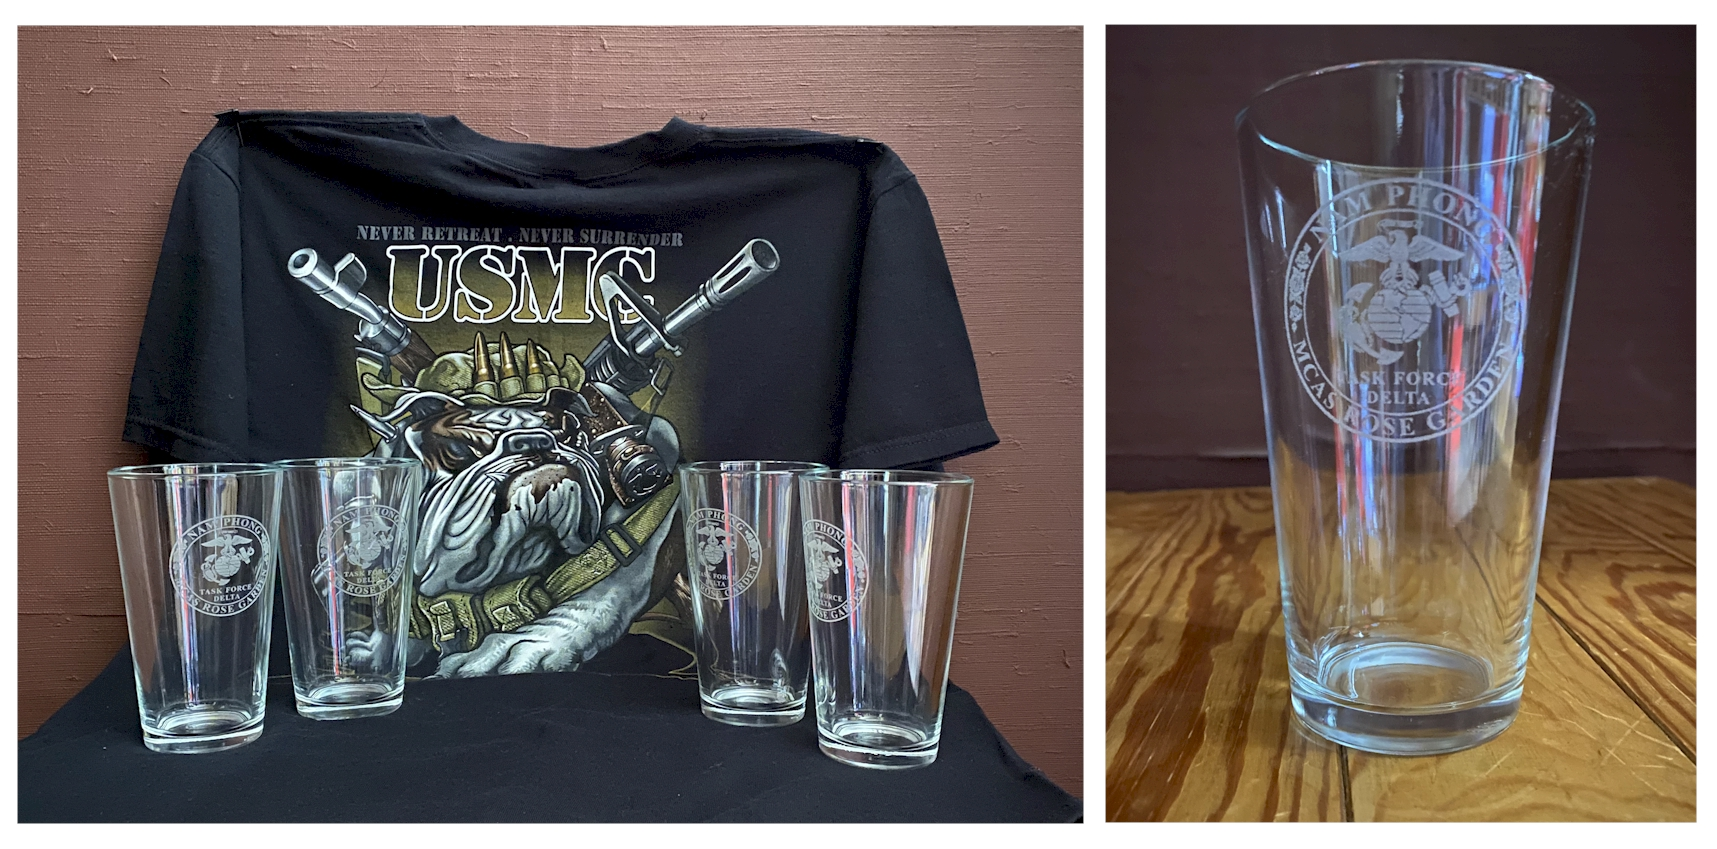 4 MCAS Rose Garden Engraved Beer Glasses and USMC T-Shirt